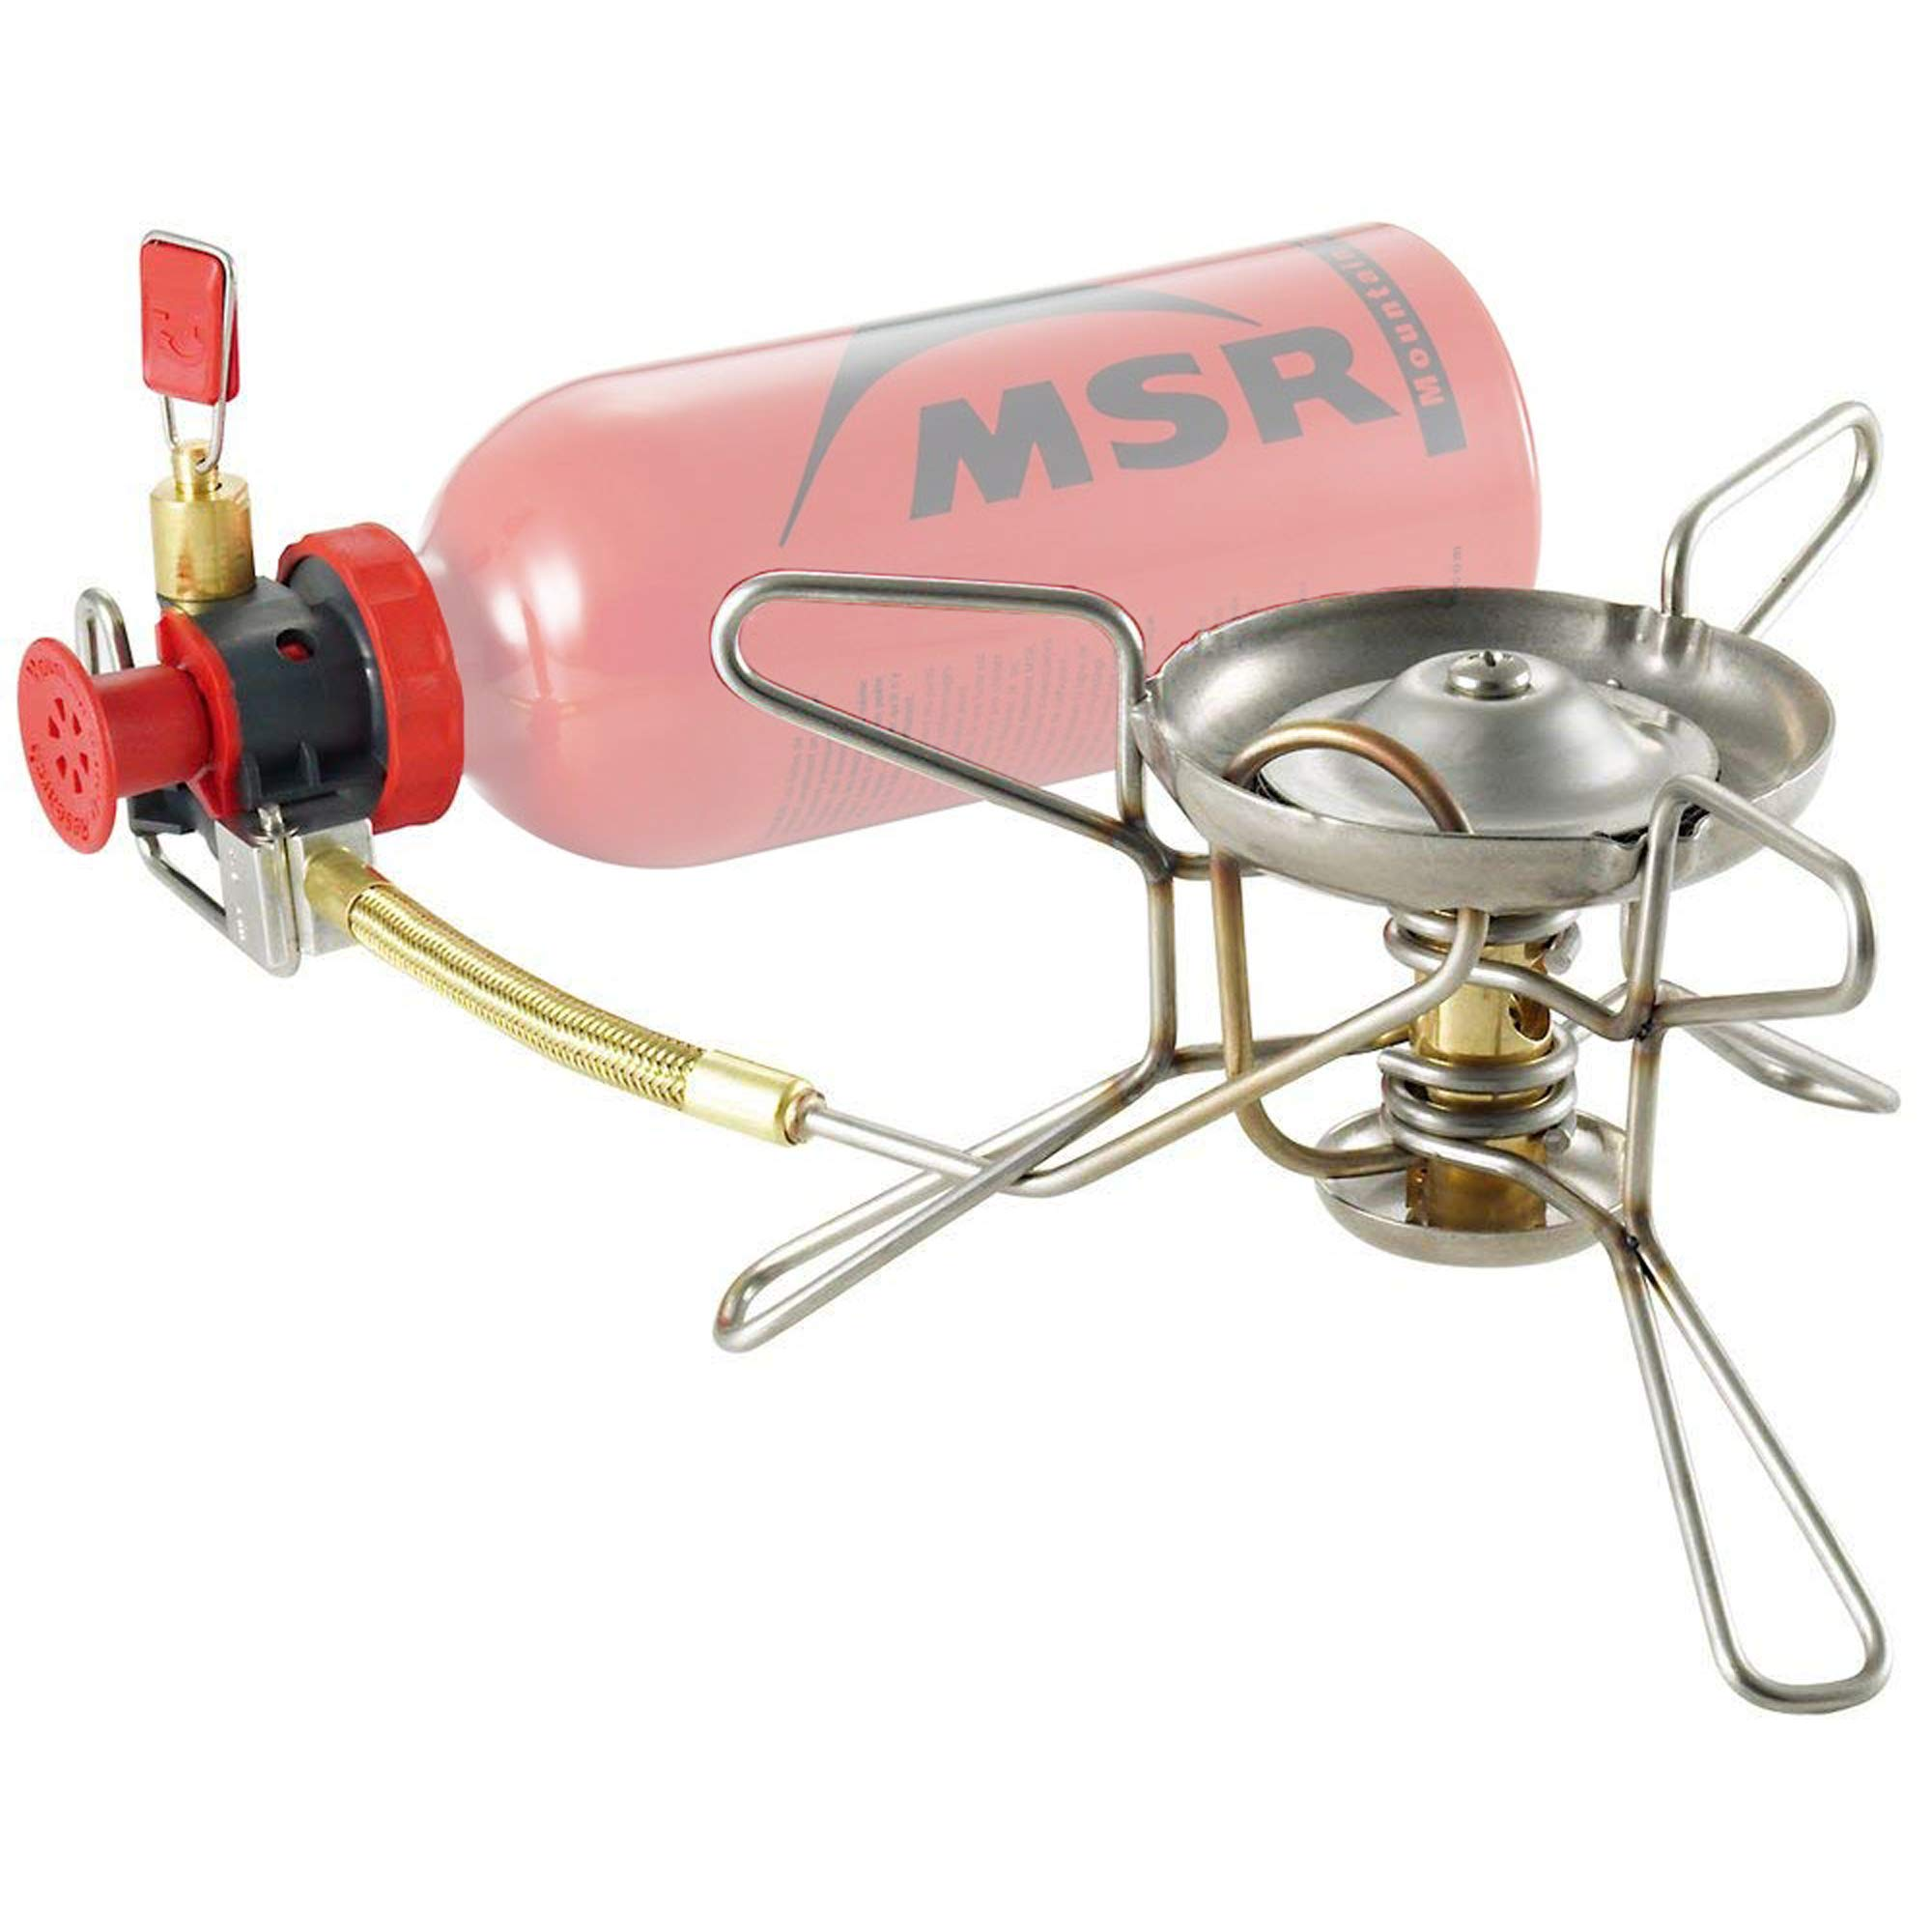 MSR WhisperLite Portable Camping and Backpacking Stove by MSR